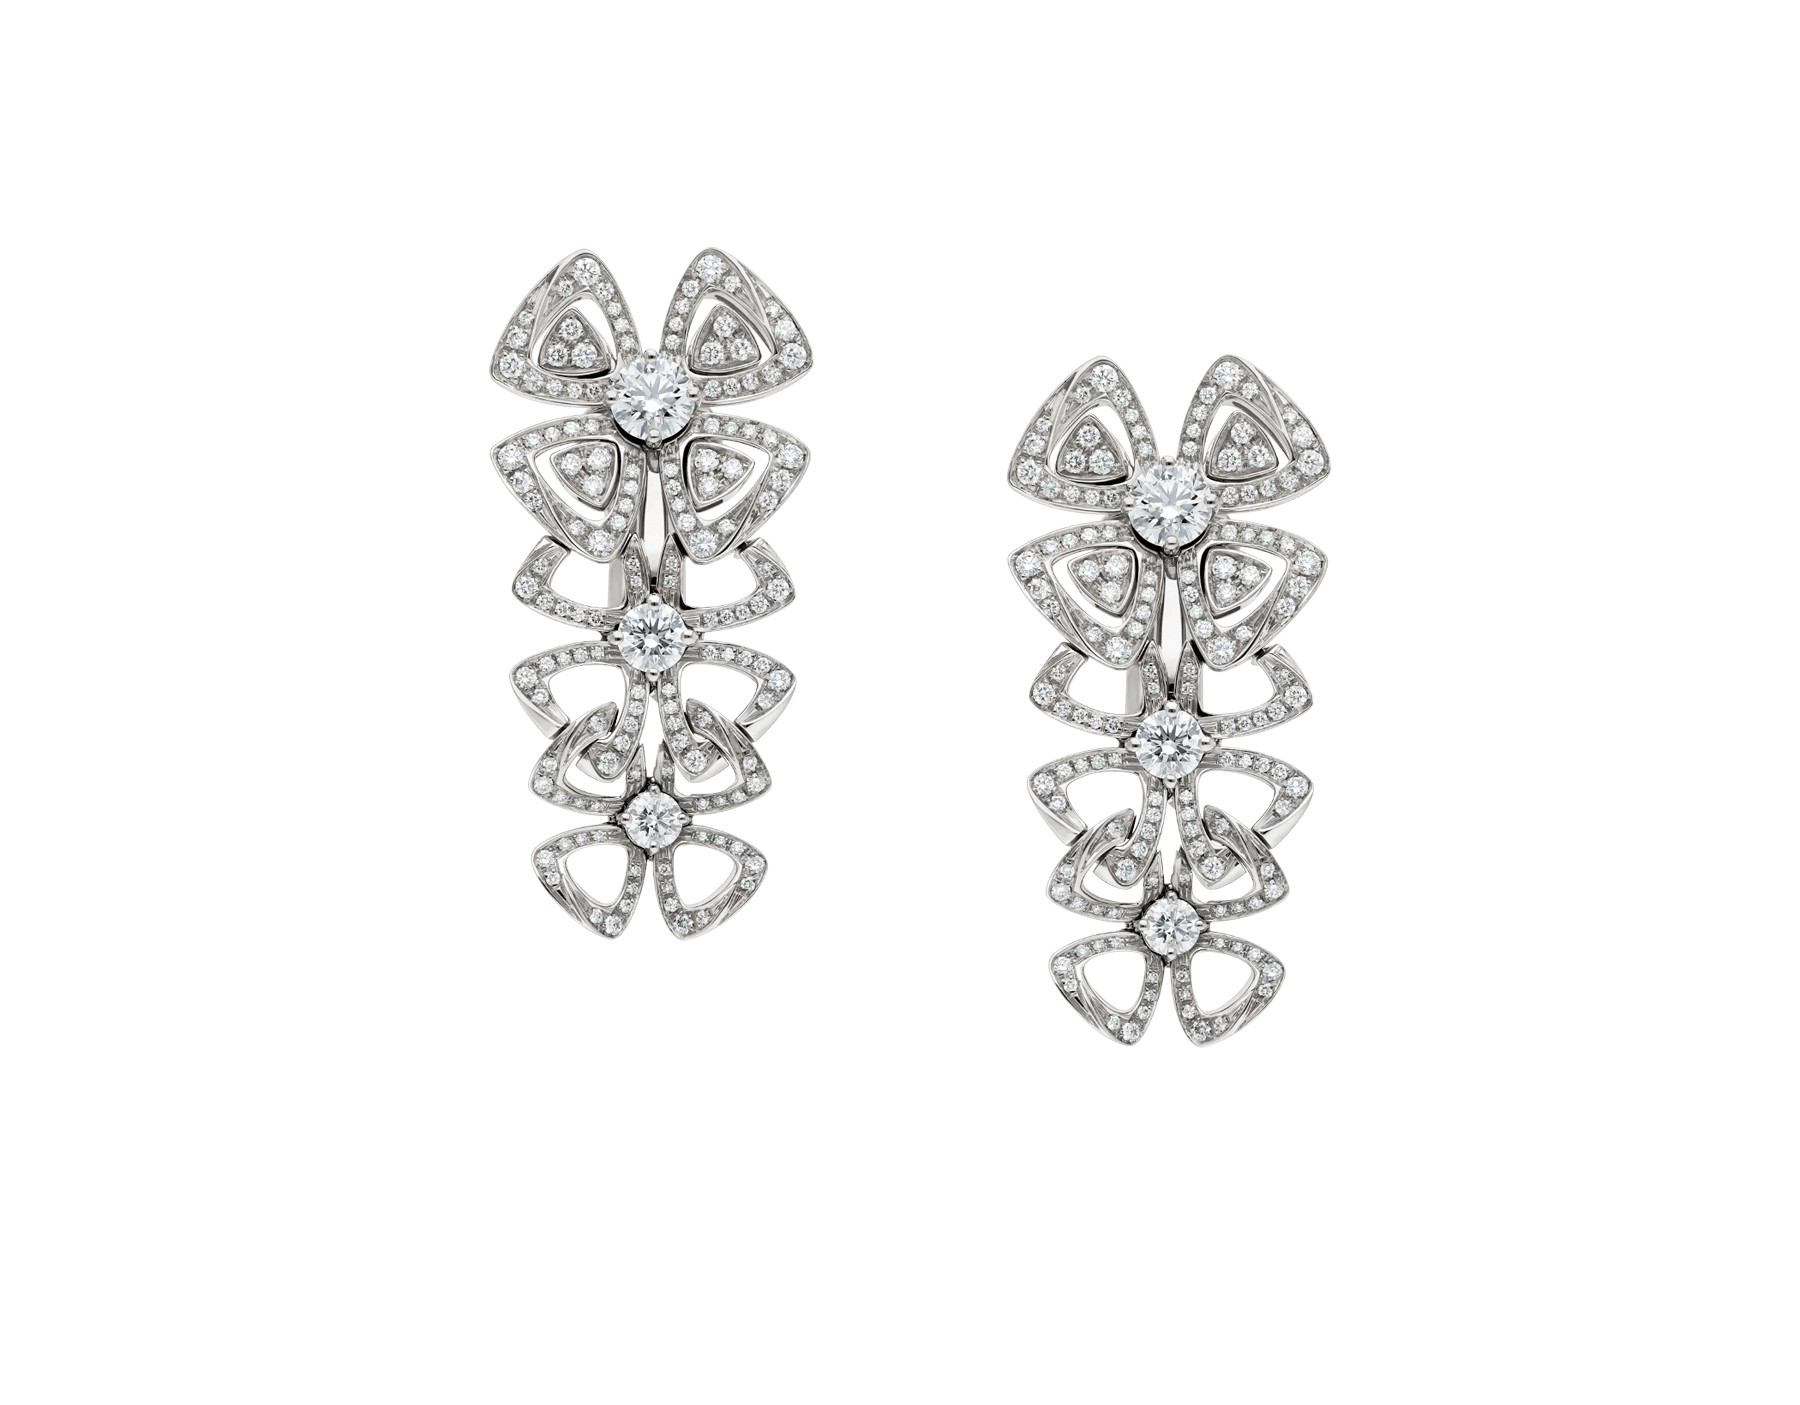 Fiorever 18 kt white gold pendant earring, set with 6 round brilliant-cut diamonds and pavé diamonds. 356911 image 1